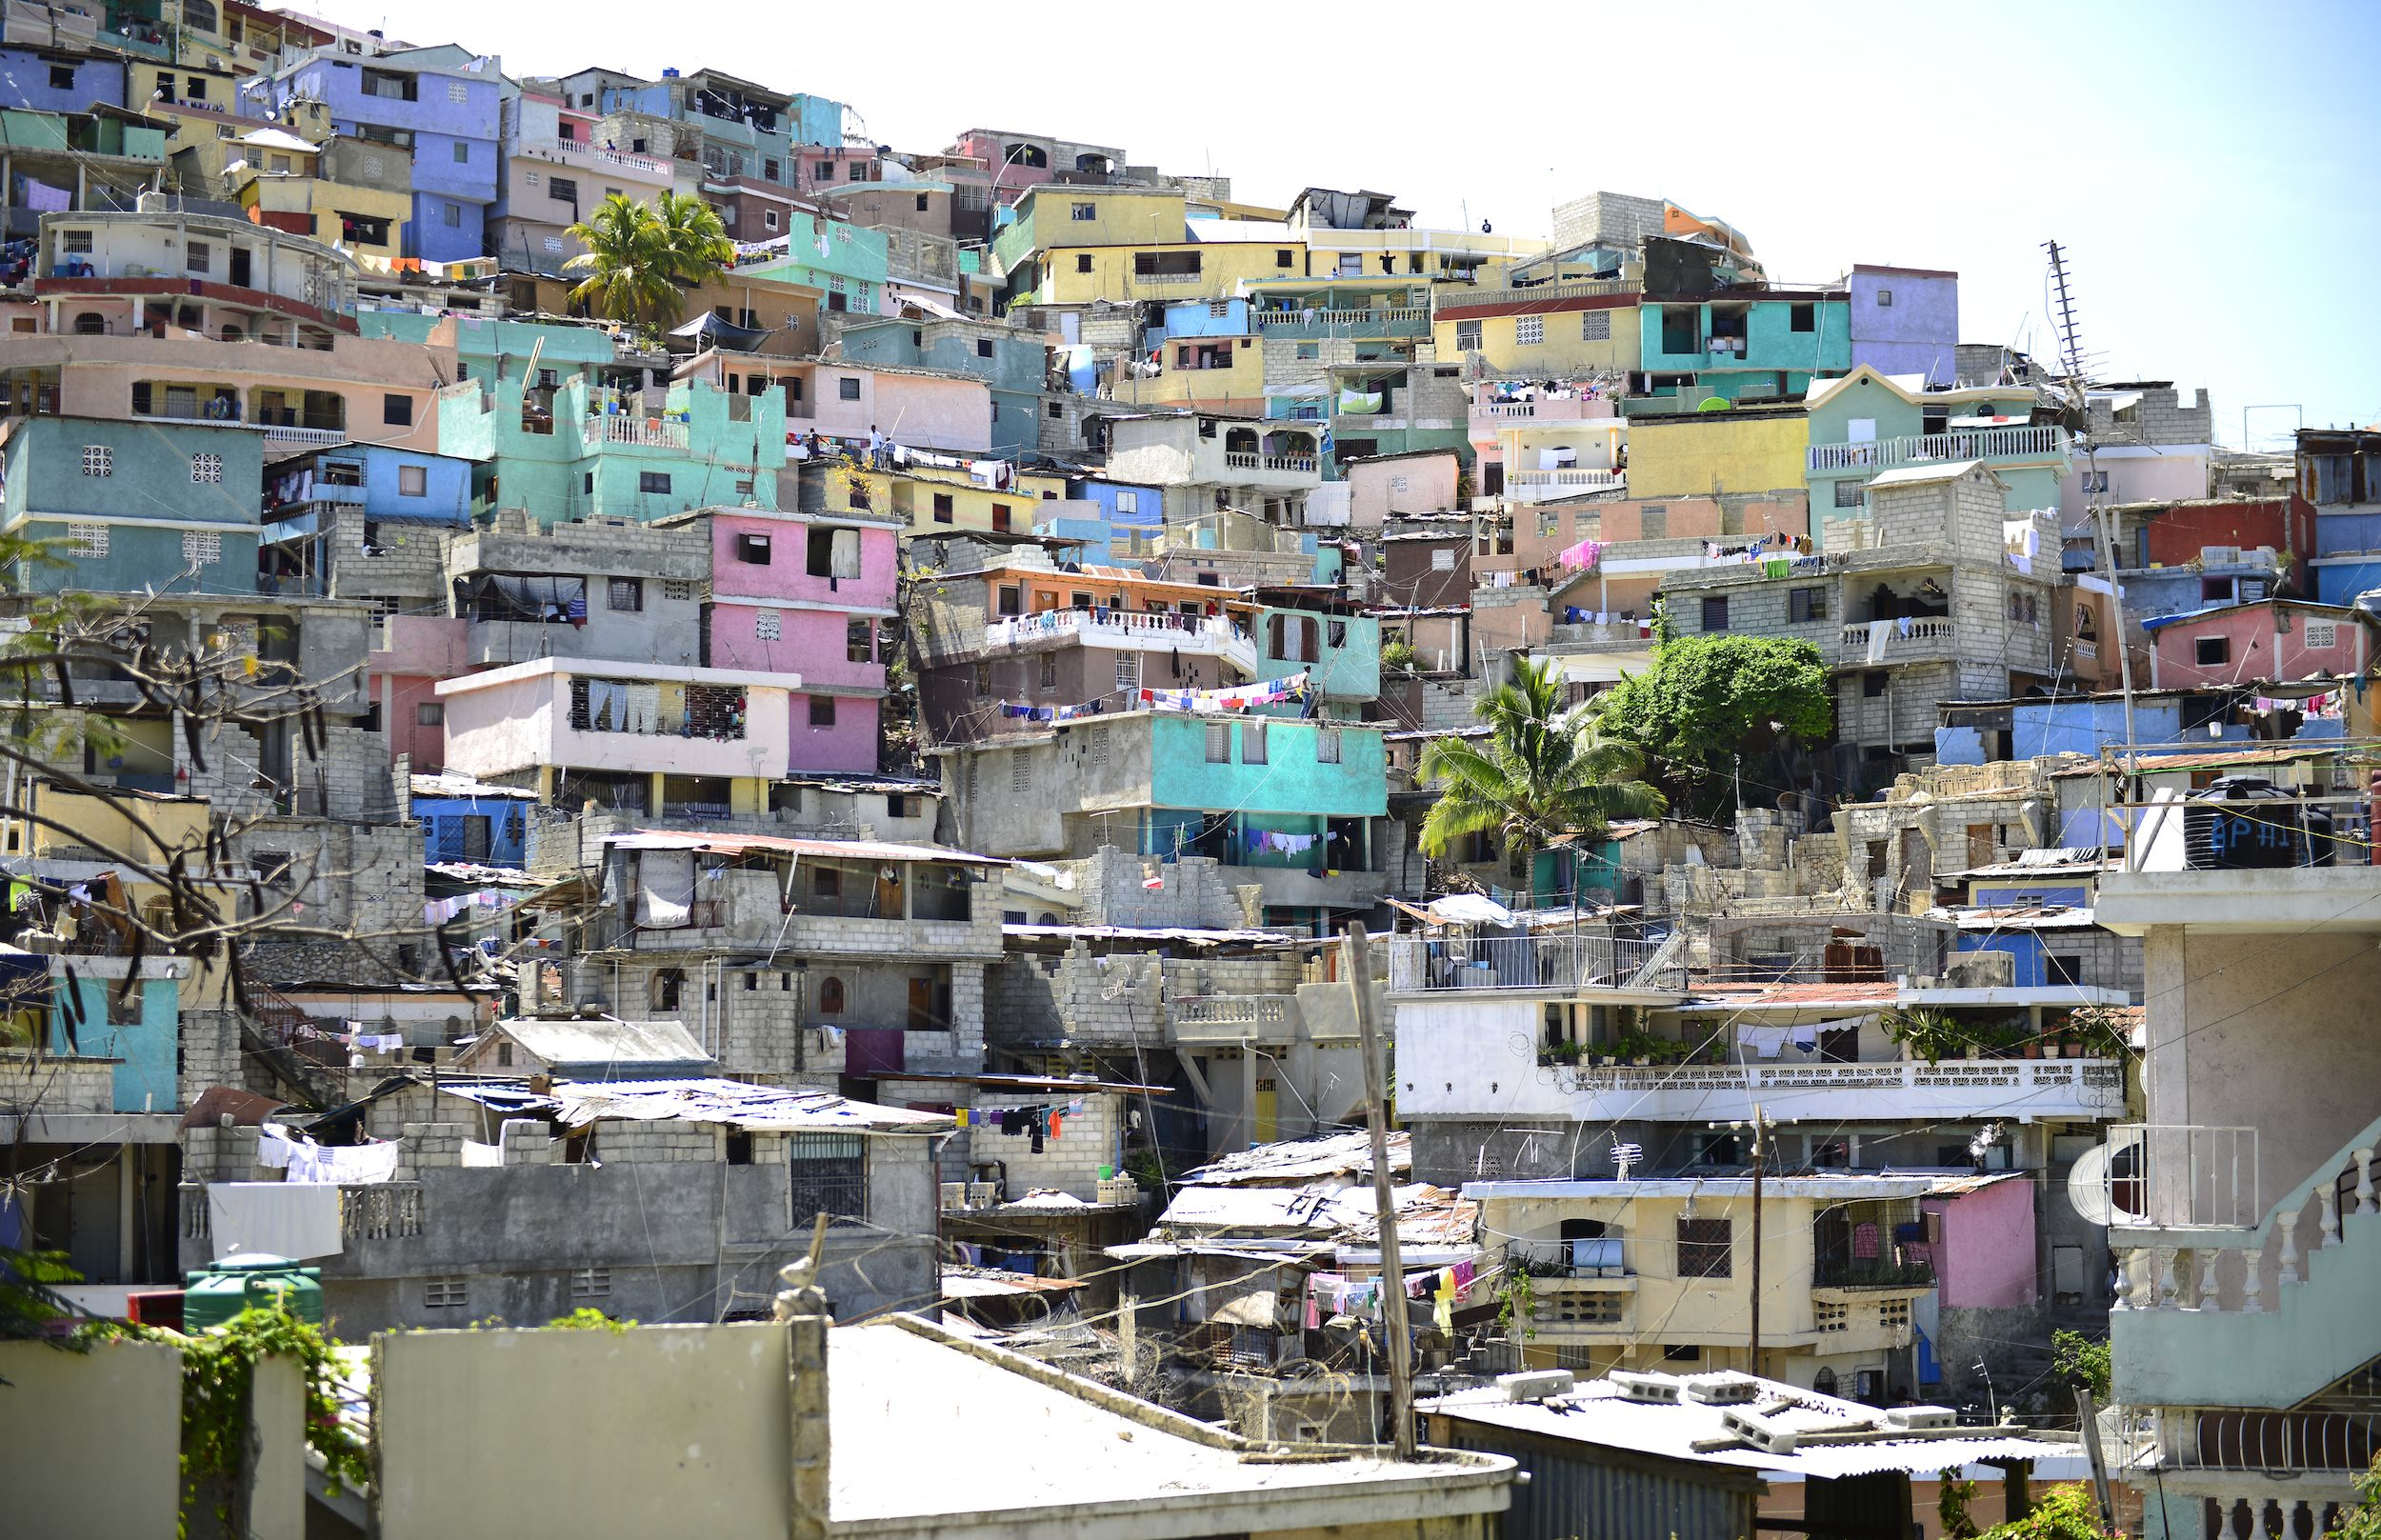 Multi-coloured houses jammed together up a hillside in Port-au-Prince, Haiti